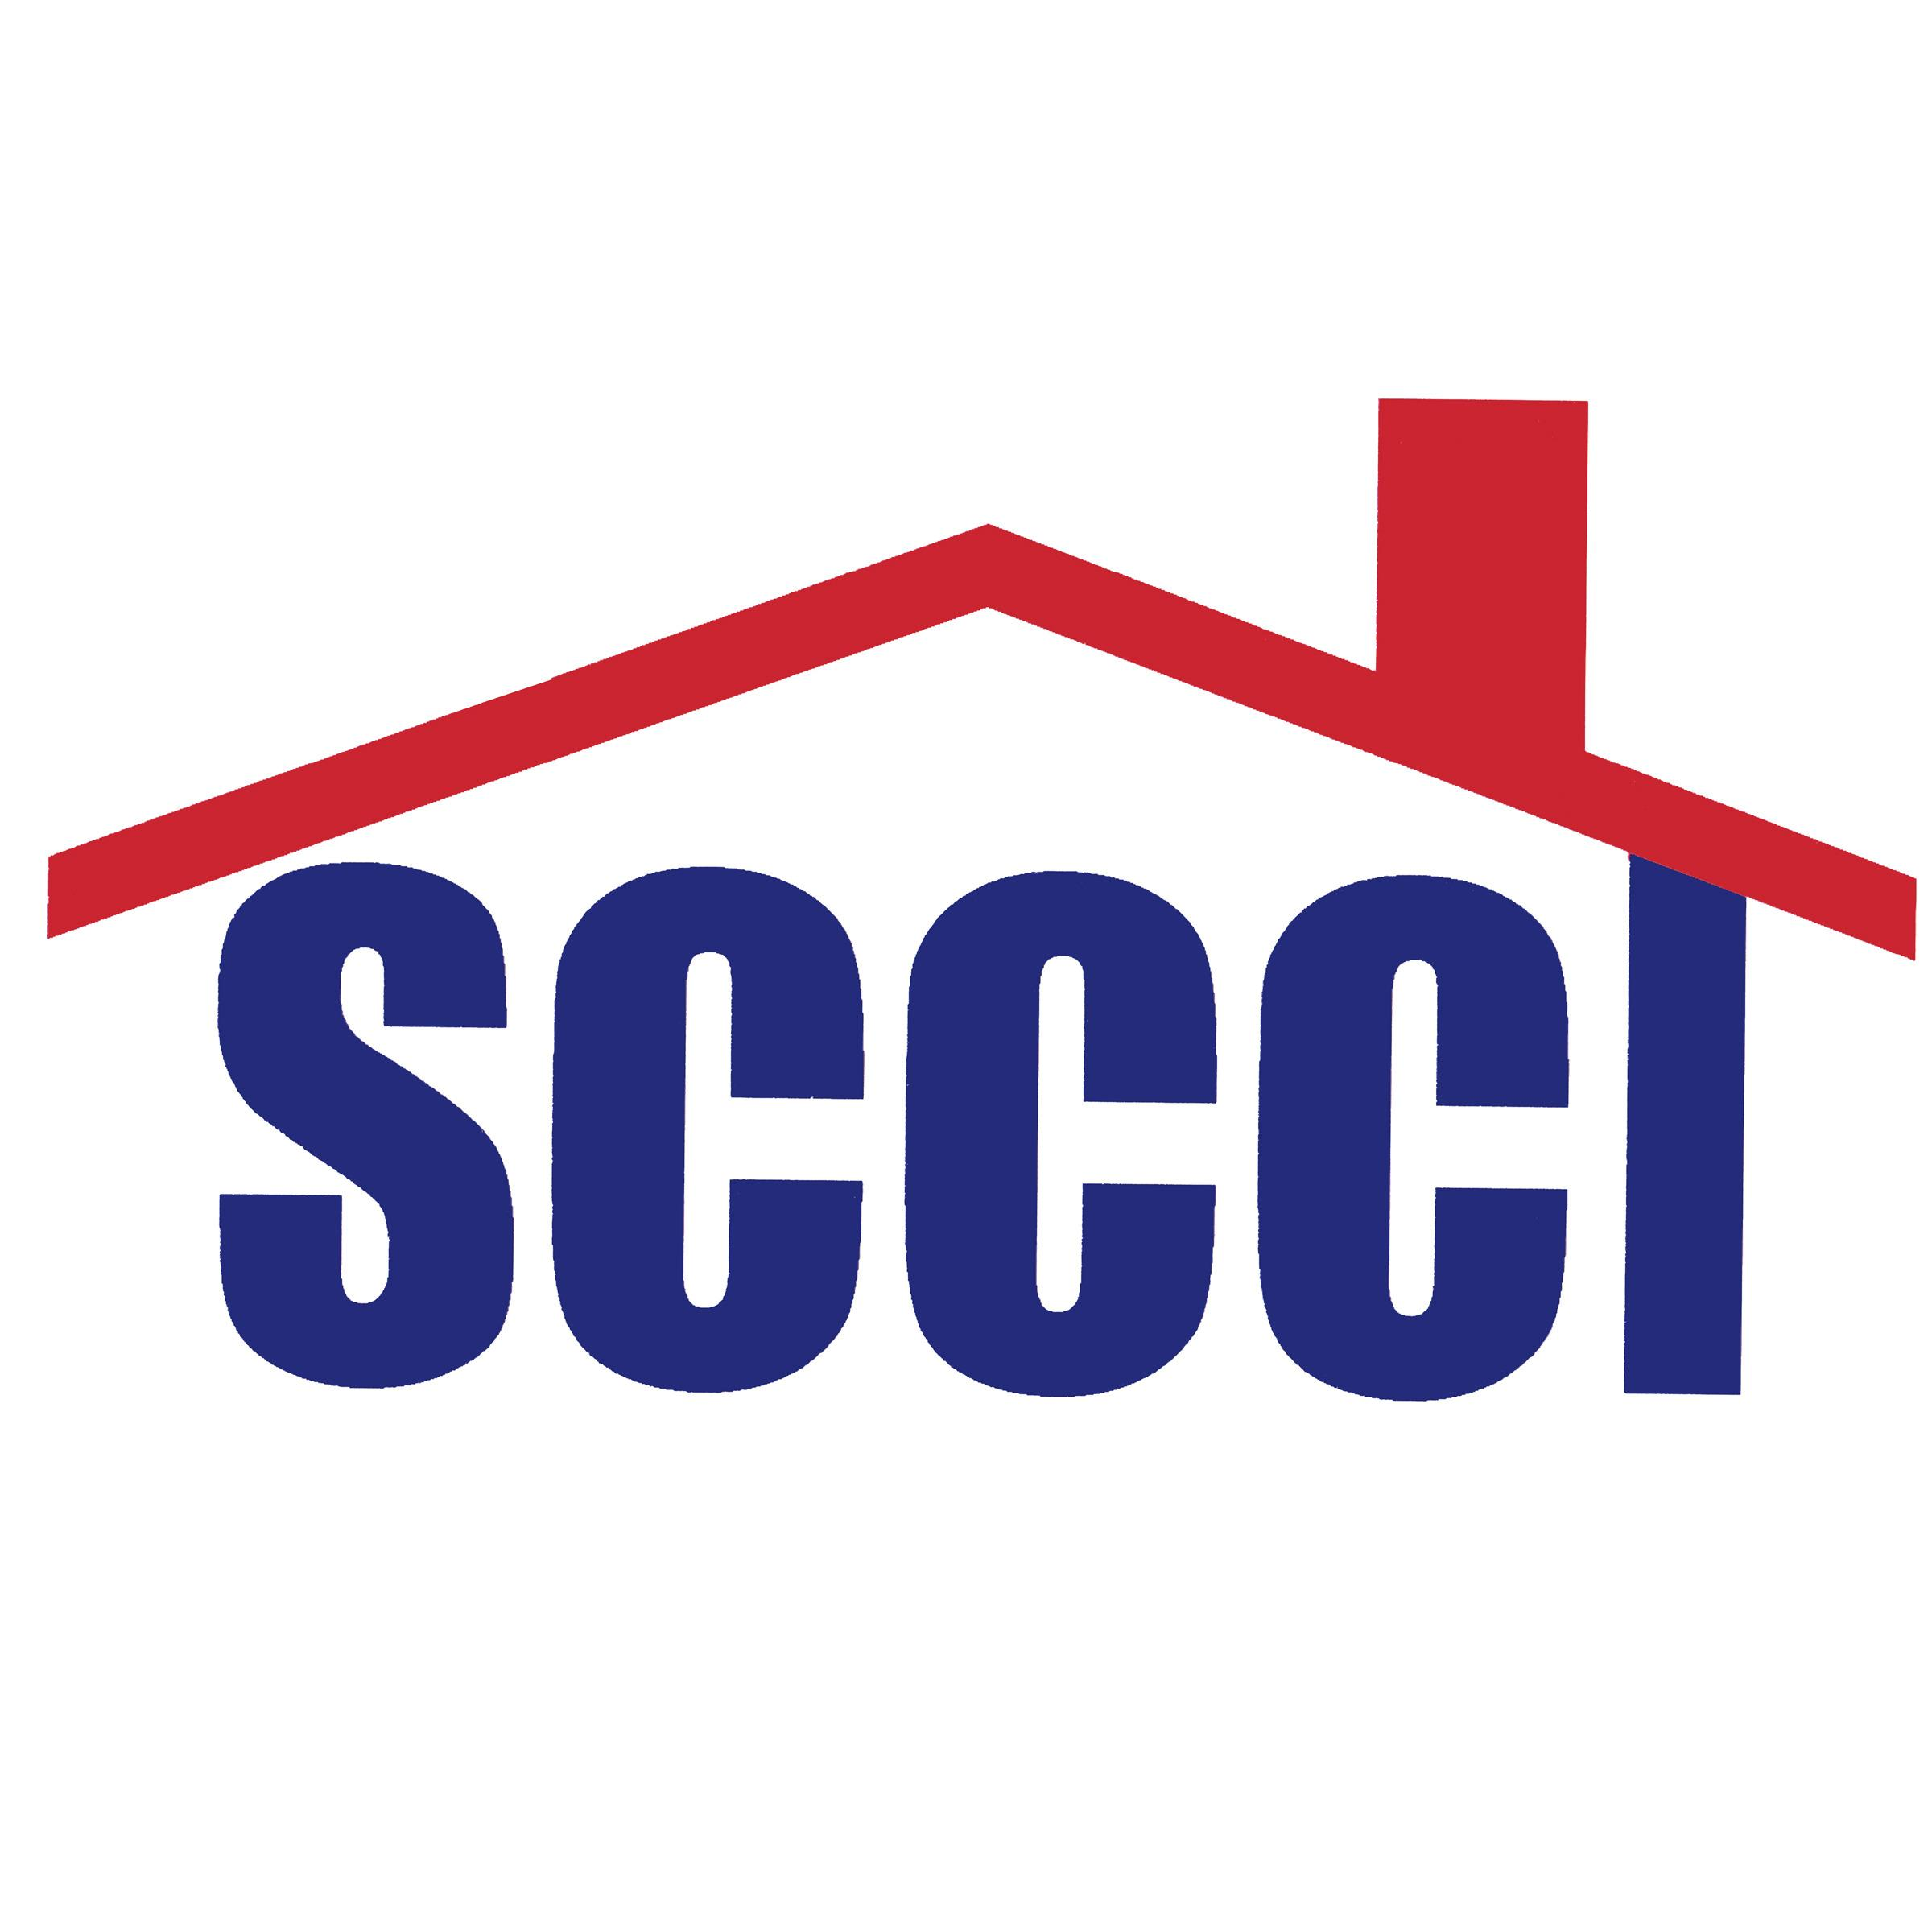 SCCCI - S CA Construction Consultants, Inc.